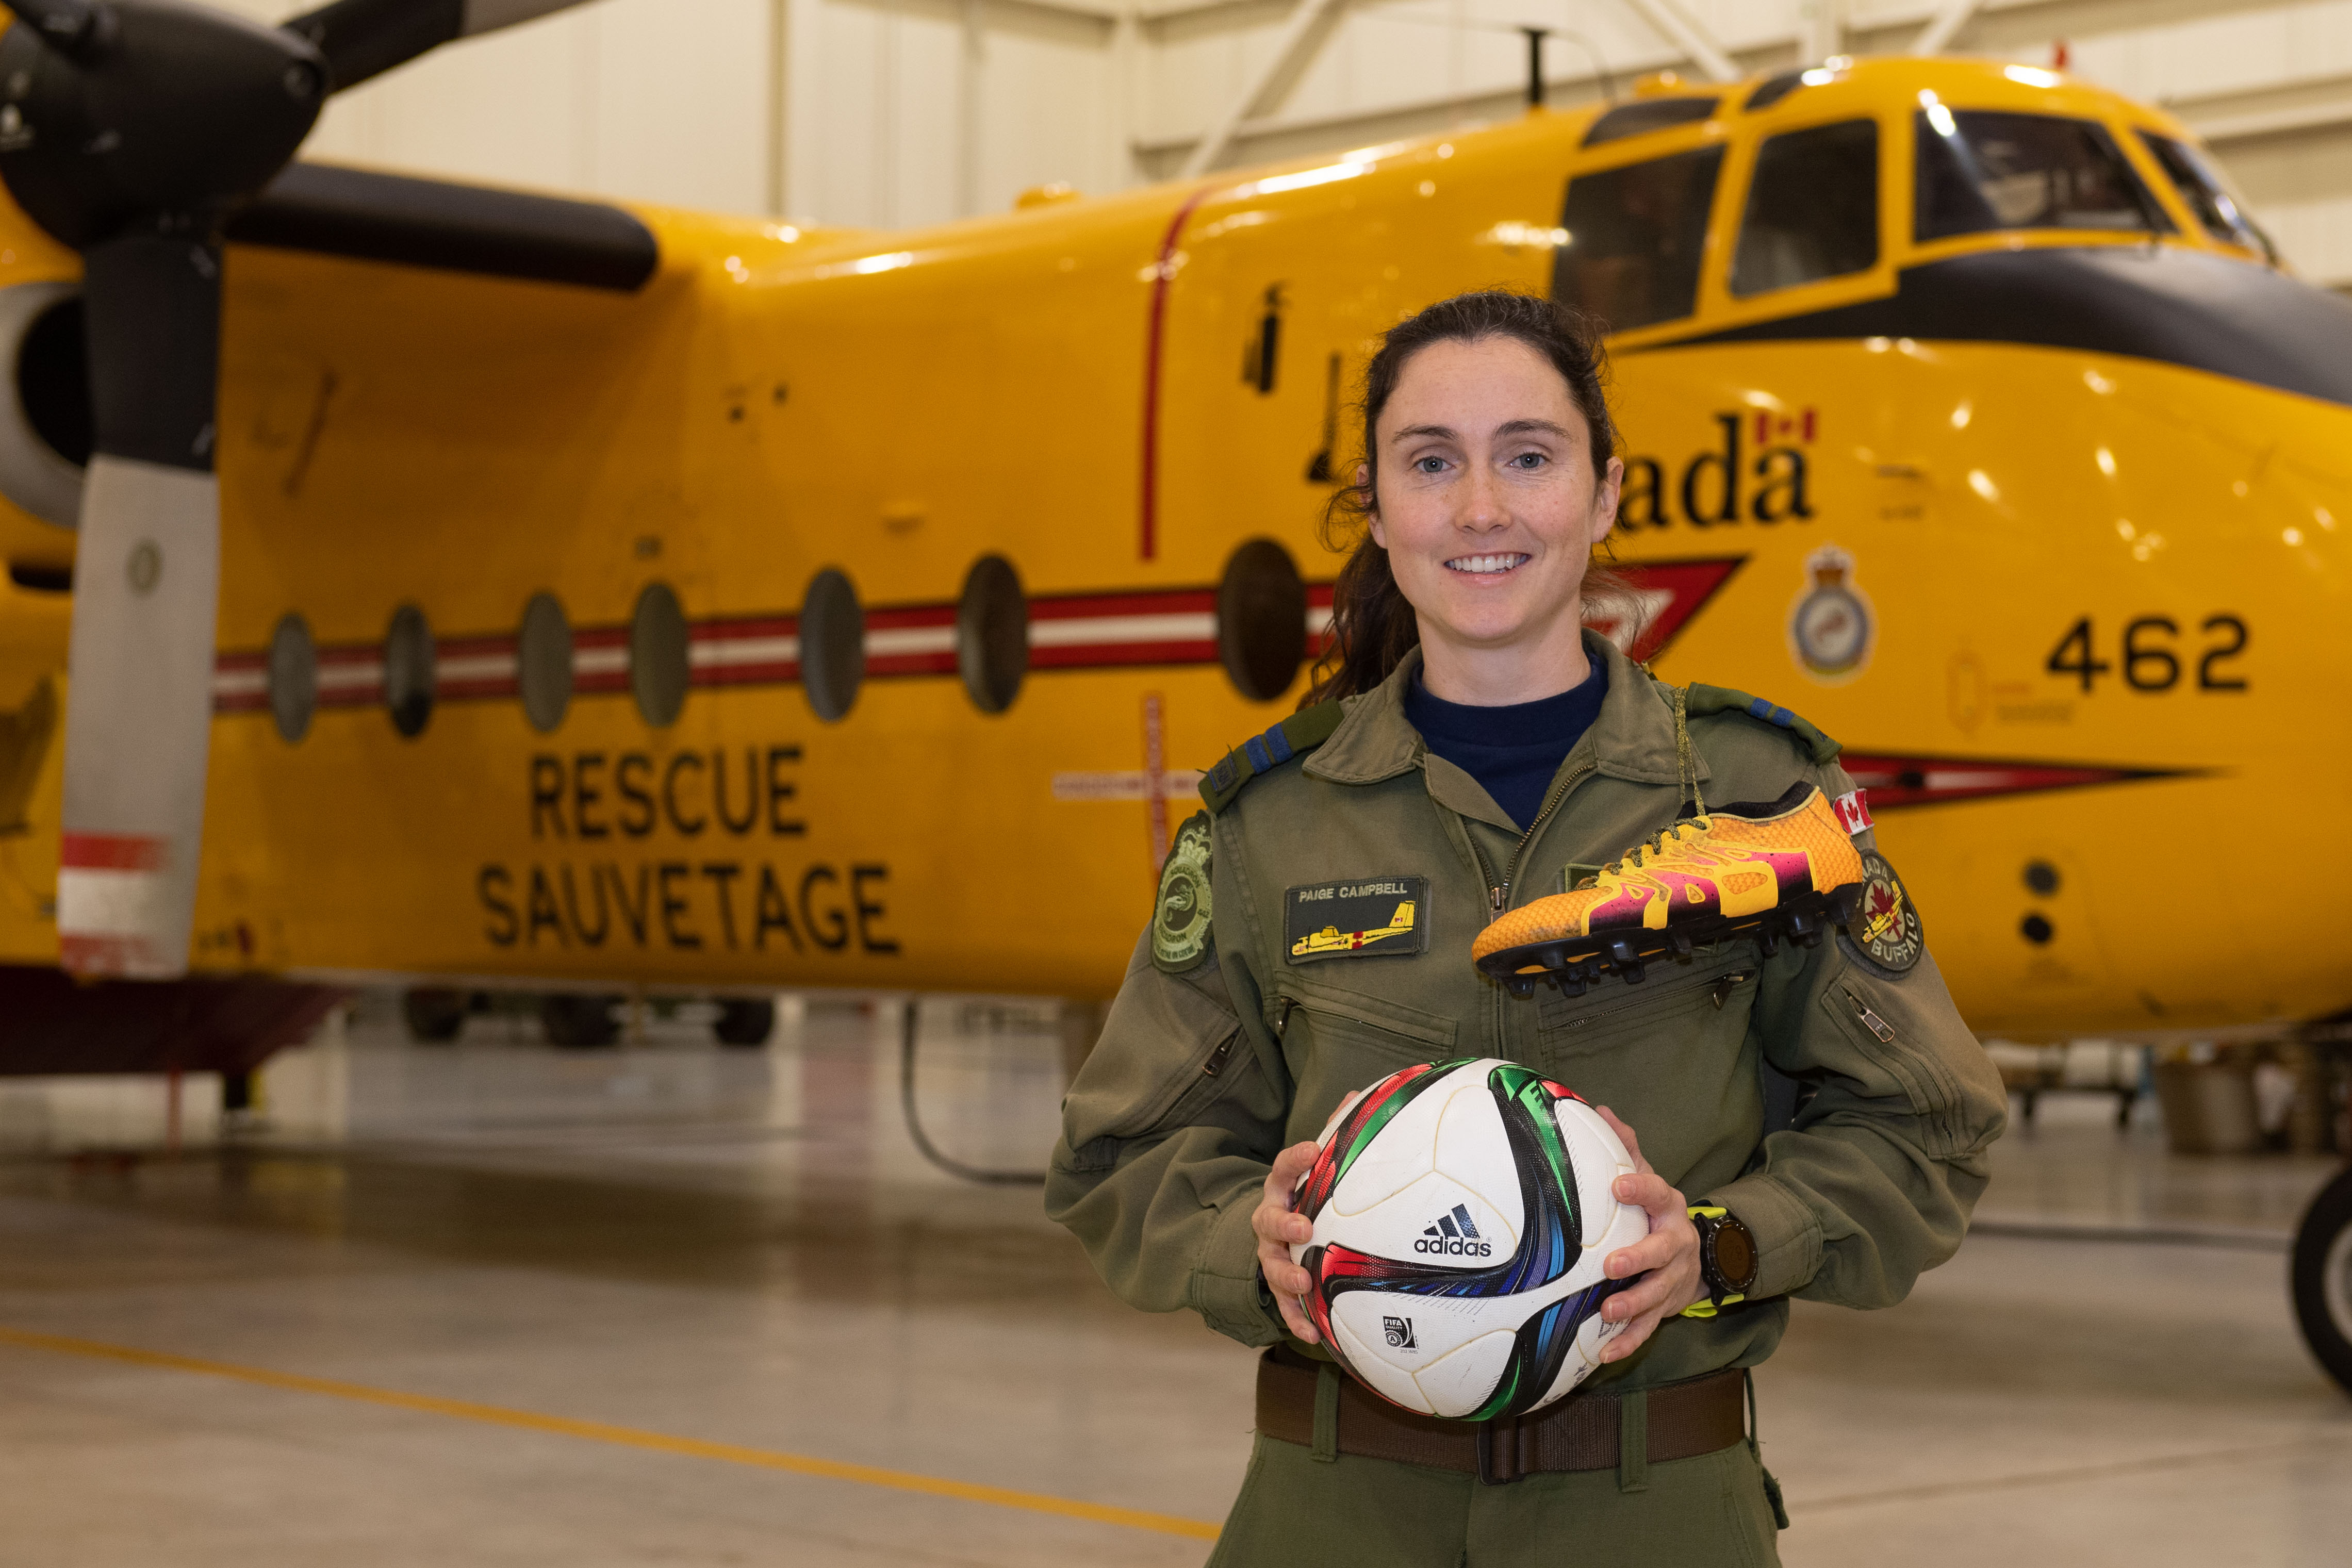 RCAF Female Athlete of the Year, Captain Paige Campbell, an Air Combat Systems Officer with 442 Transport and Rescue Squadron, at 19 Wing Comox, poses in front of a CC-115 Buffalo search and rescue aircraft at 19 Wing Comox, British Columbia, on December 3, 2020. PHOTO: Corporal Joey Beaudin